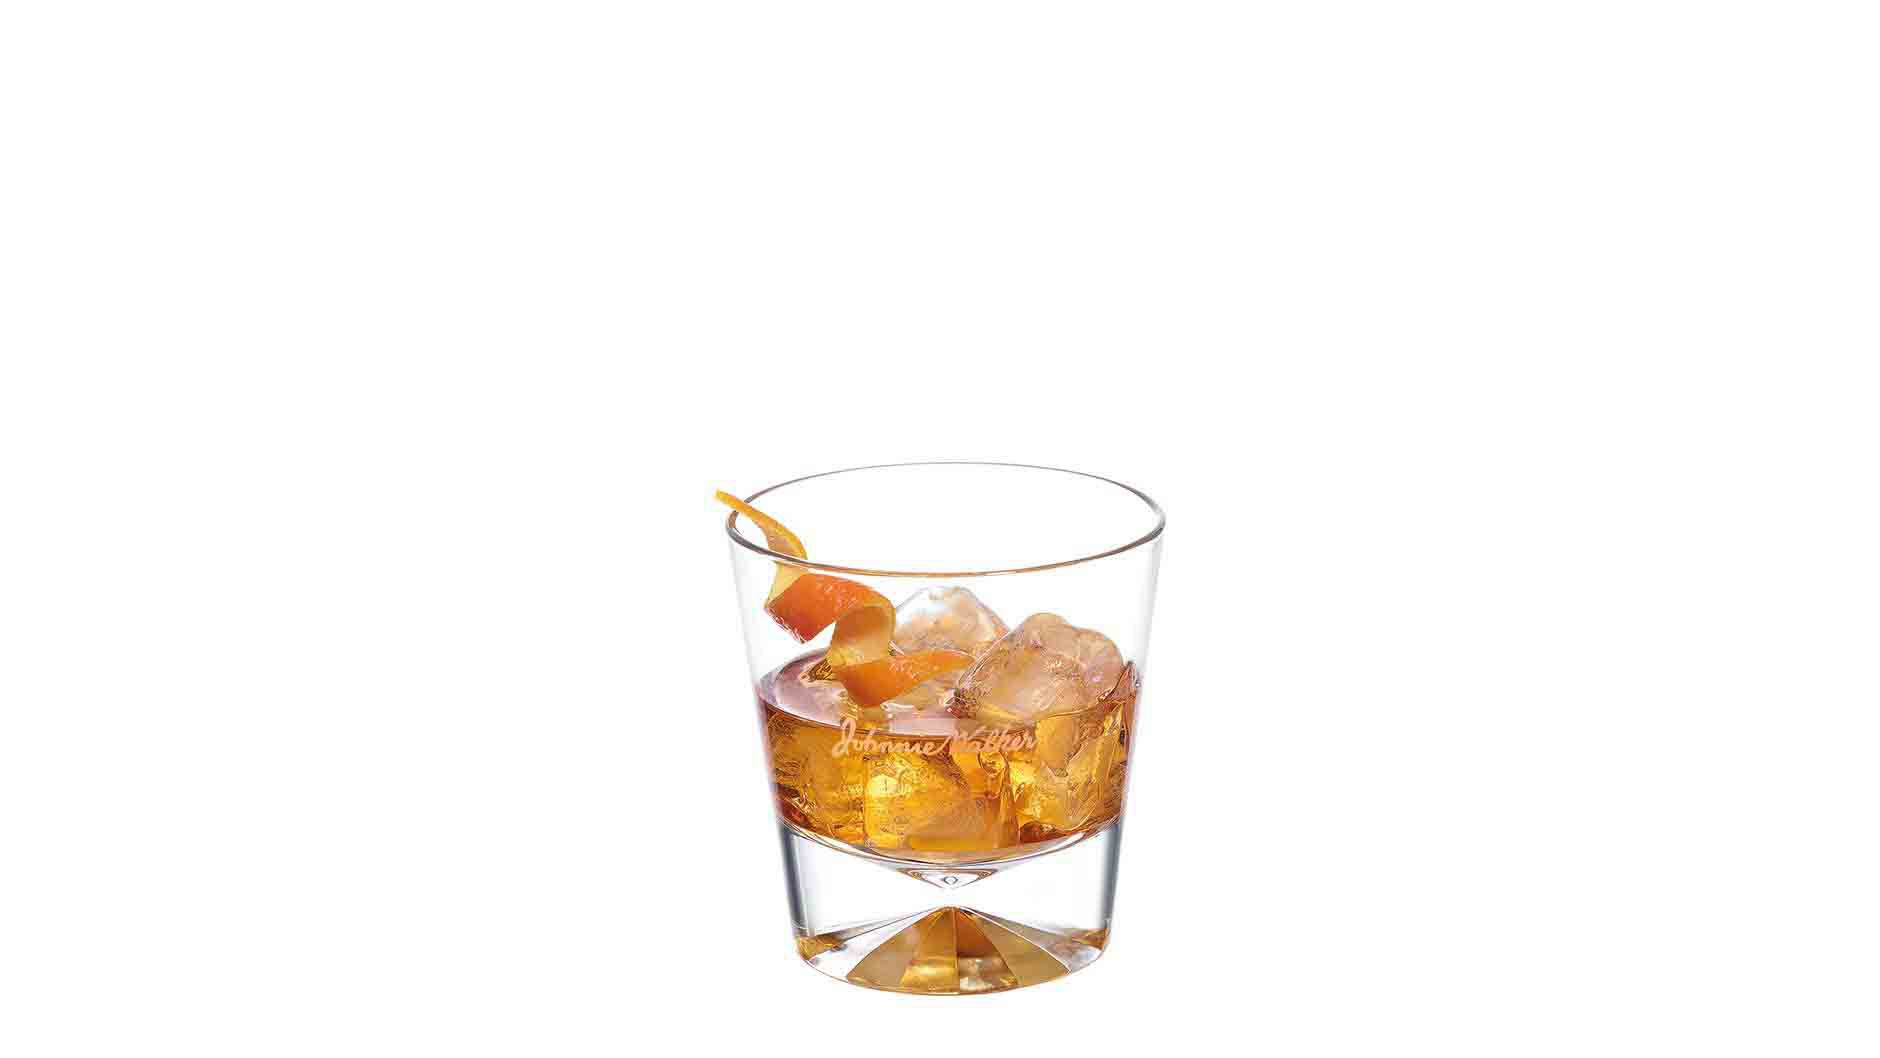 Cocktail Johnnie Walker Black Old Fashioned dans un verre à whisky